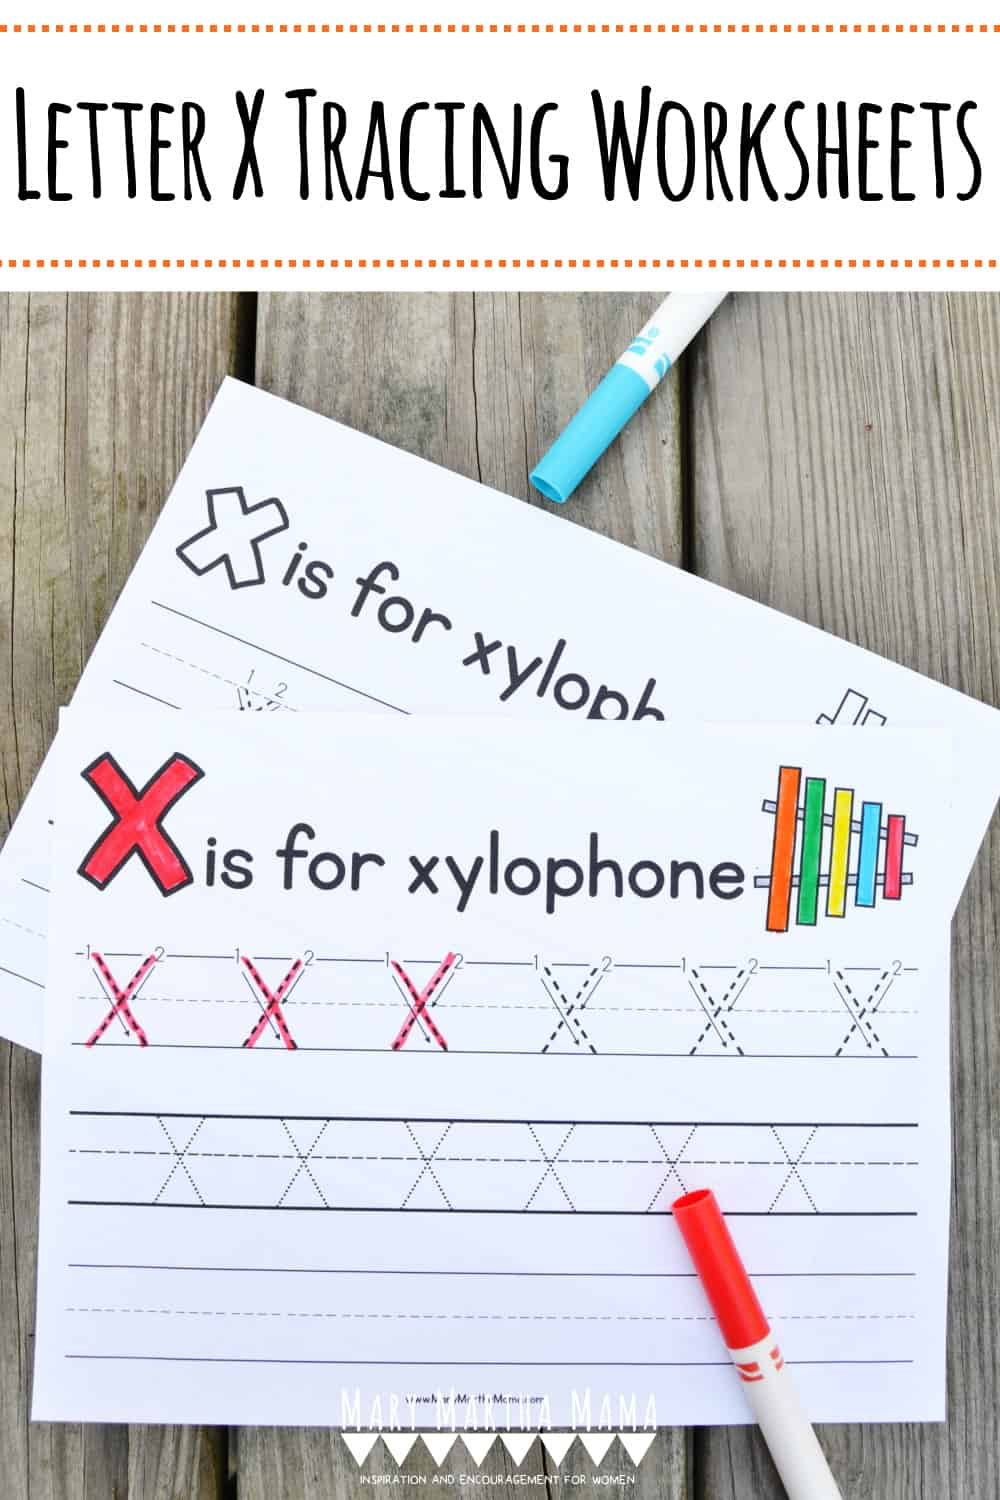 Use these free printable Letter X Tracing Worksheets to help your kiddo learn proper letter formation for upper and lower case X.